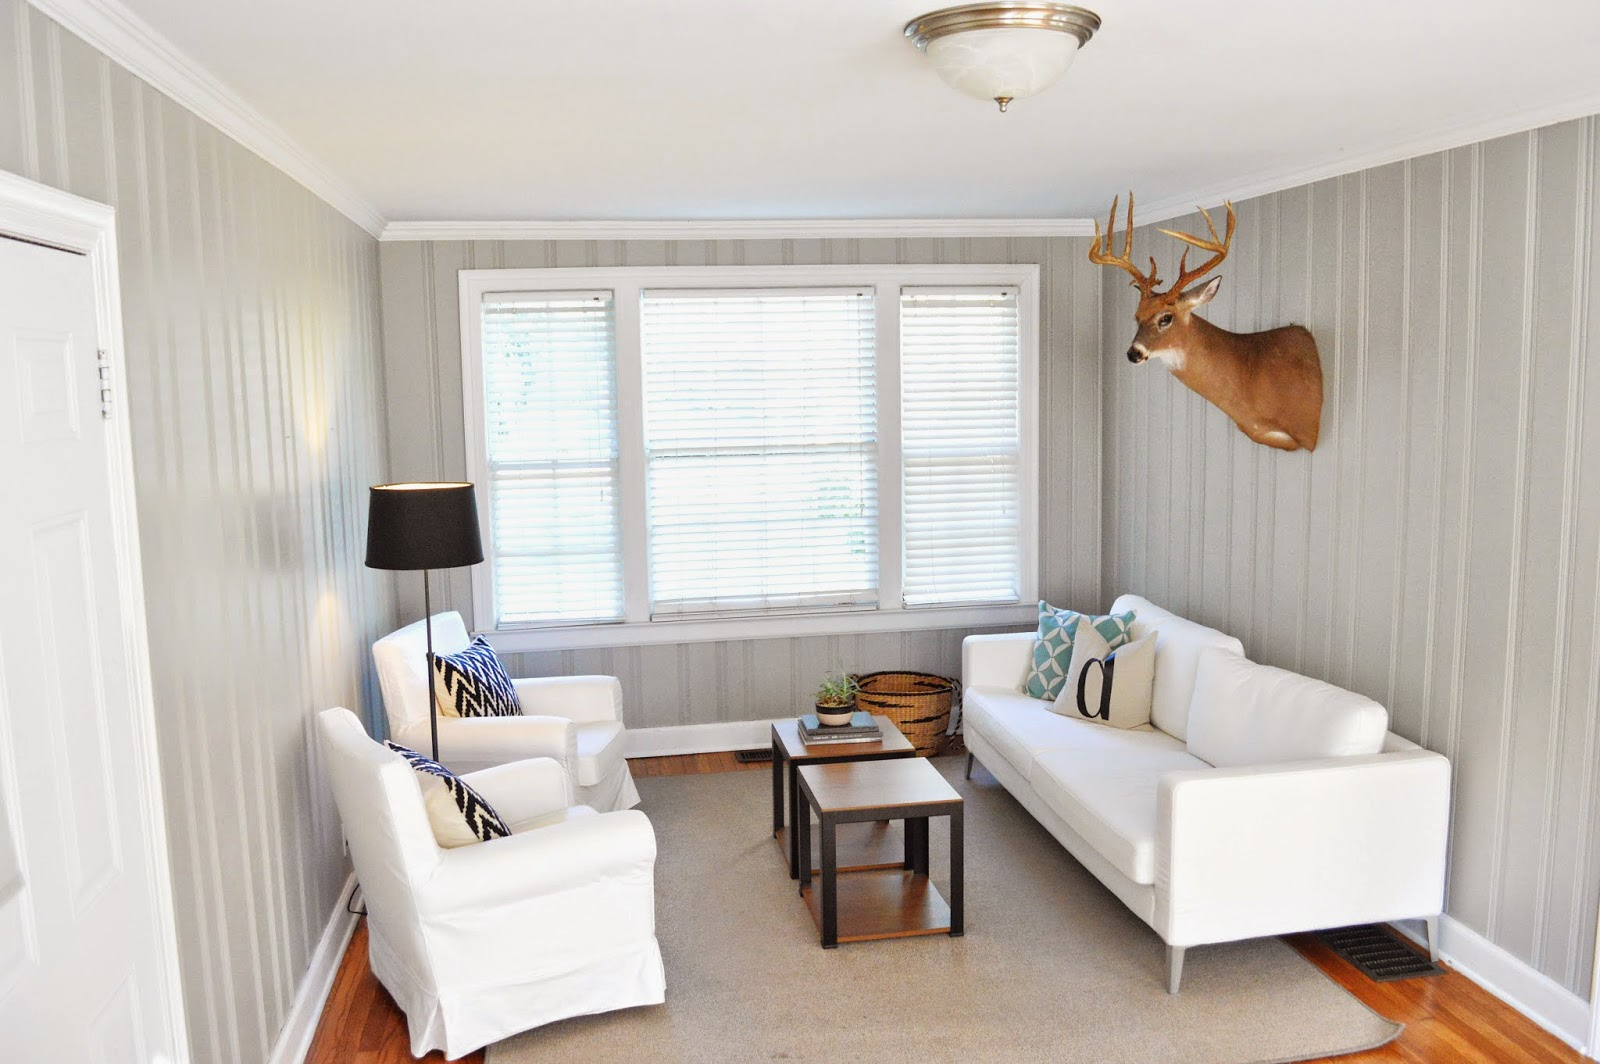 Sylvan park life what are our paint colors - Sherwin williams interior paint finishes ...